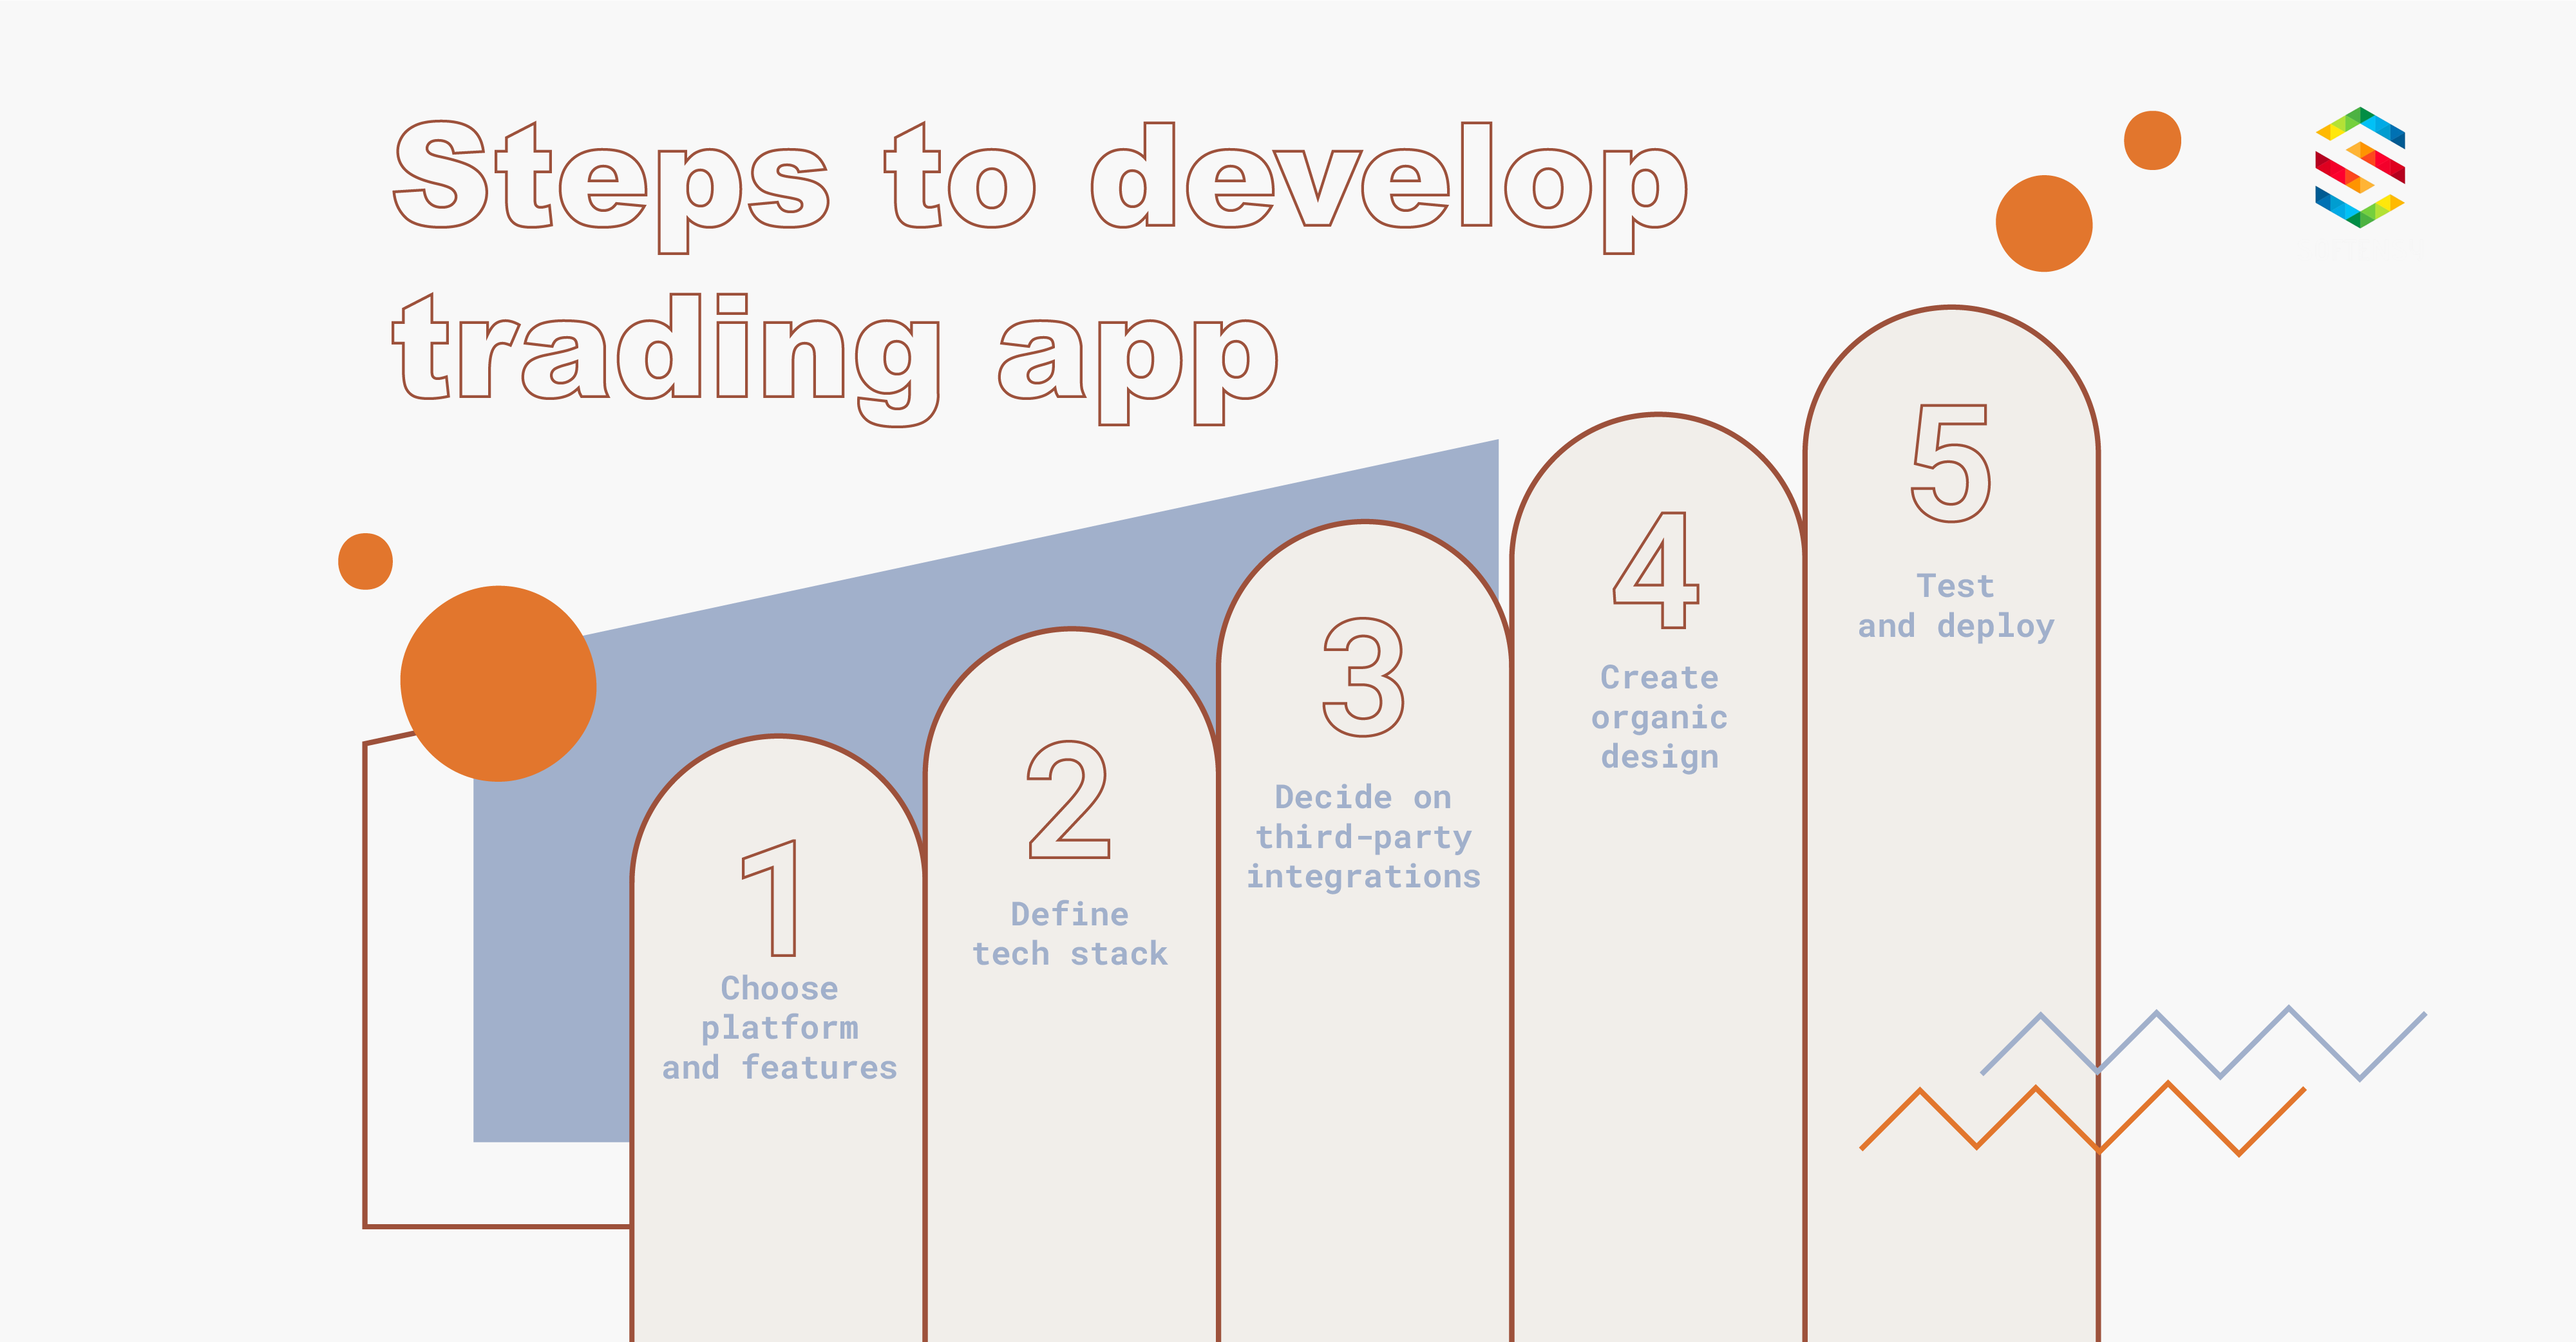 Steps to develop trading app